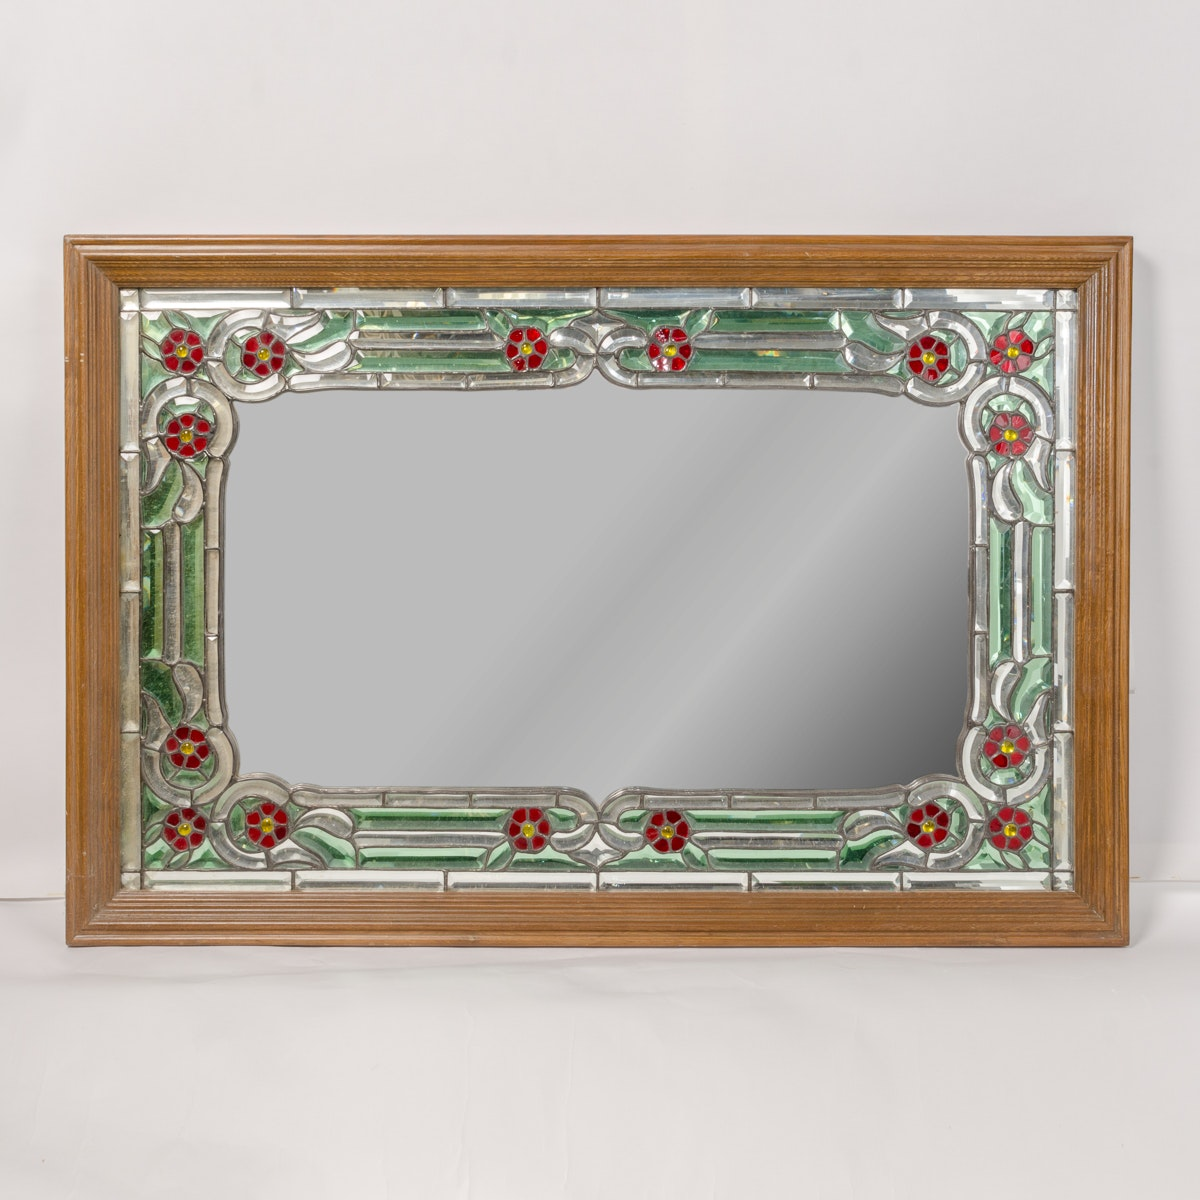 Wood Framed Mirror with Stained Glass Style Floral Motif